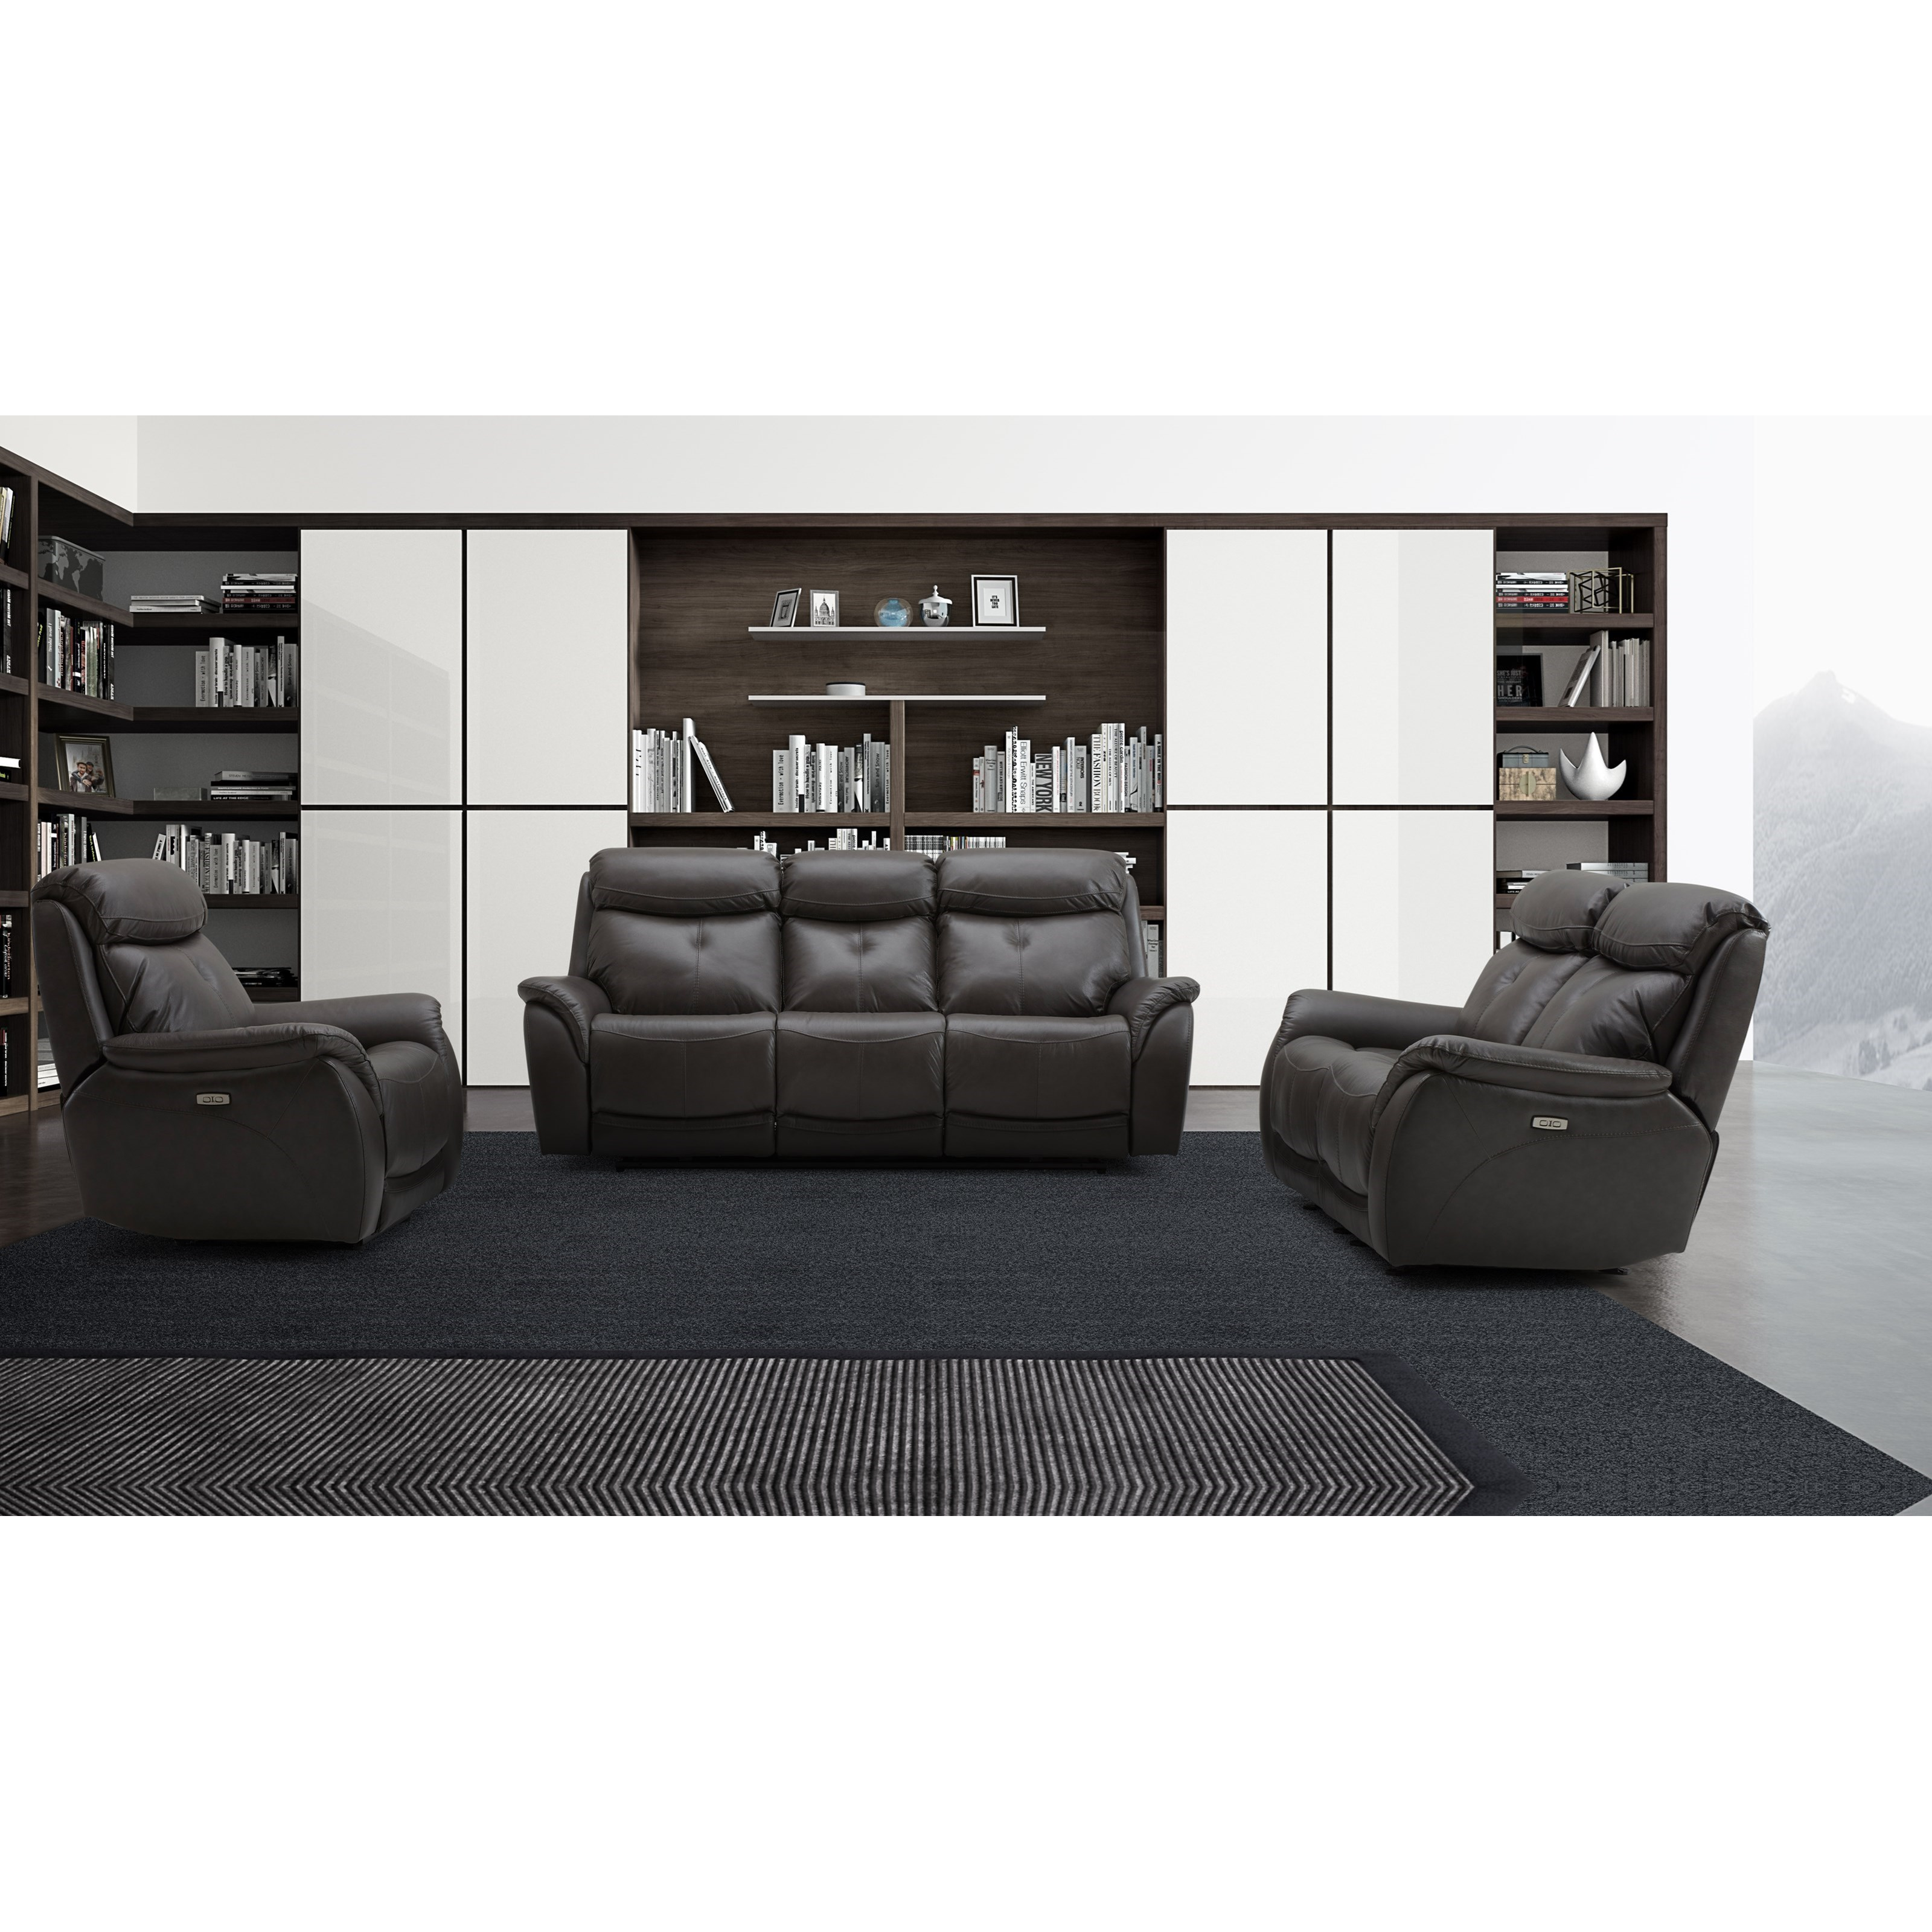 KM 167 Power Reclining Living Room Group by Warehouse M at Pilgrim Furniture City